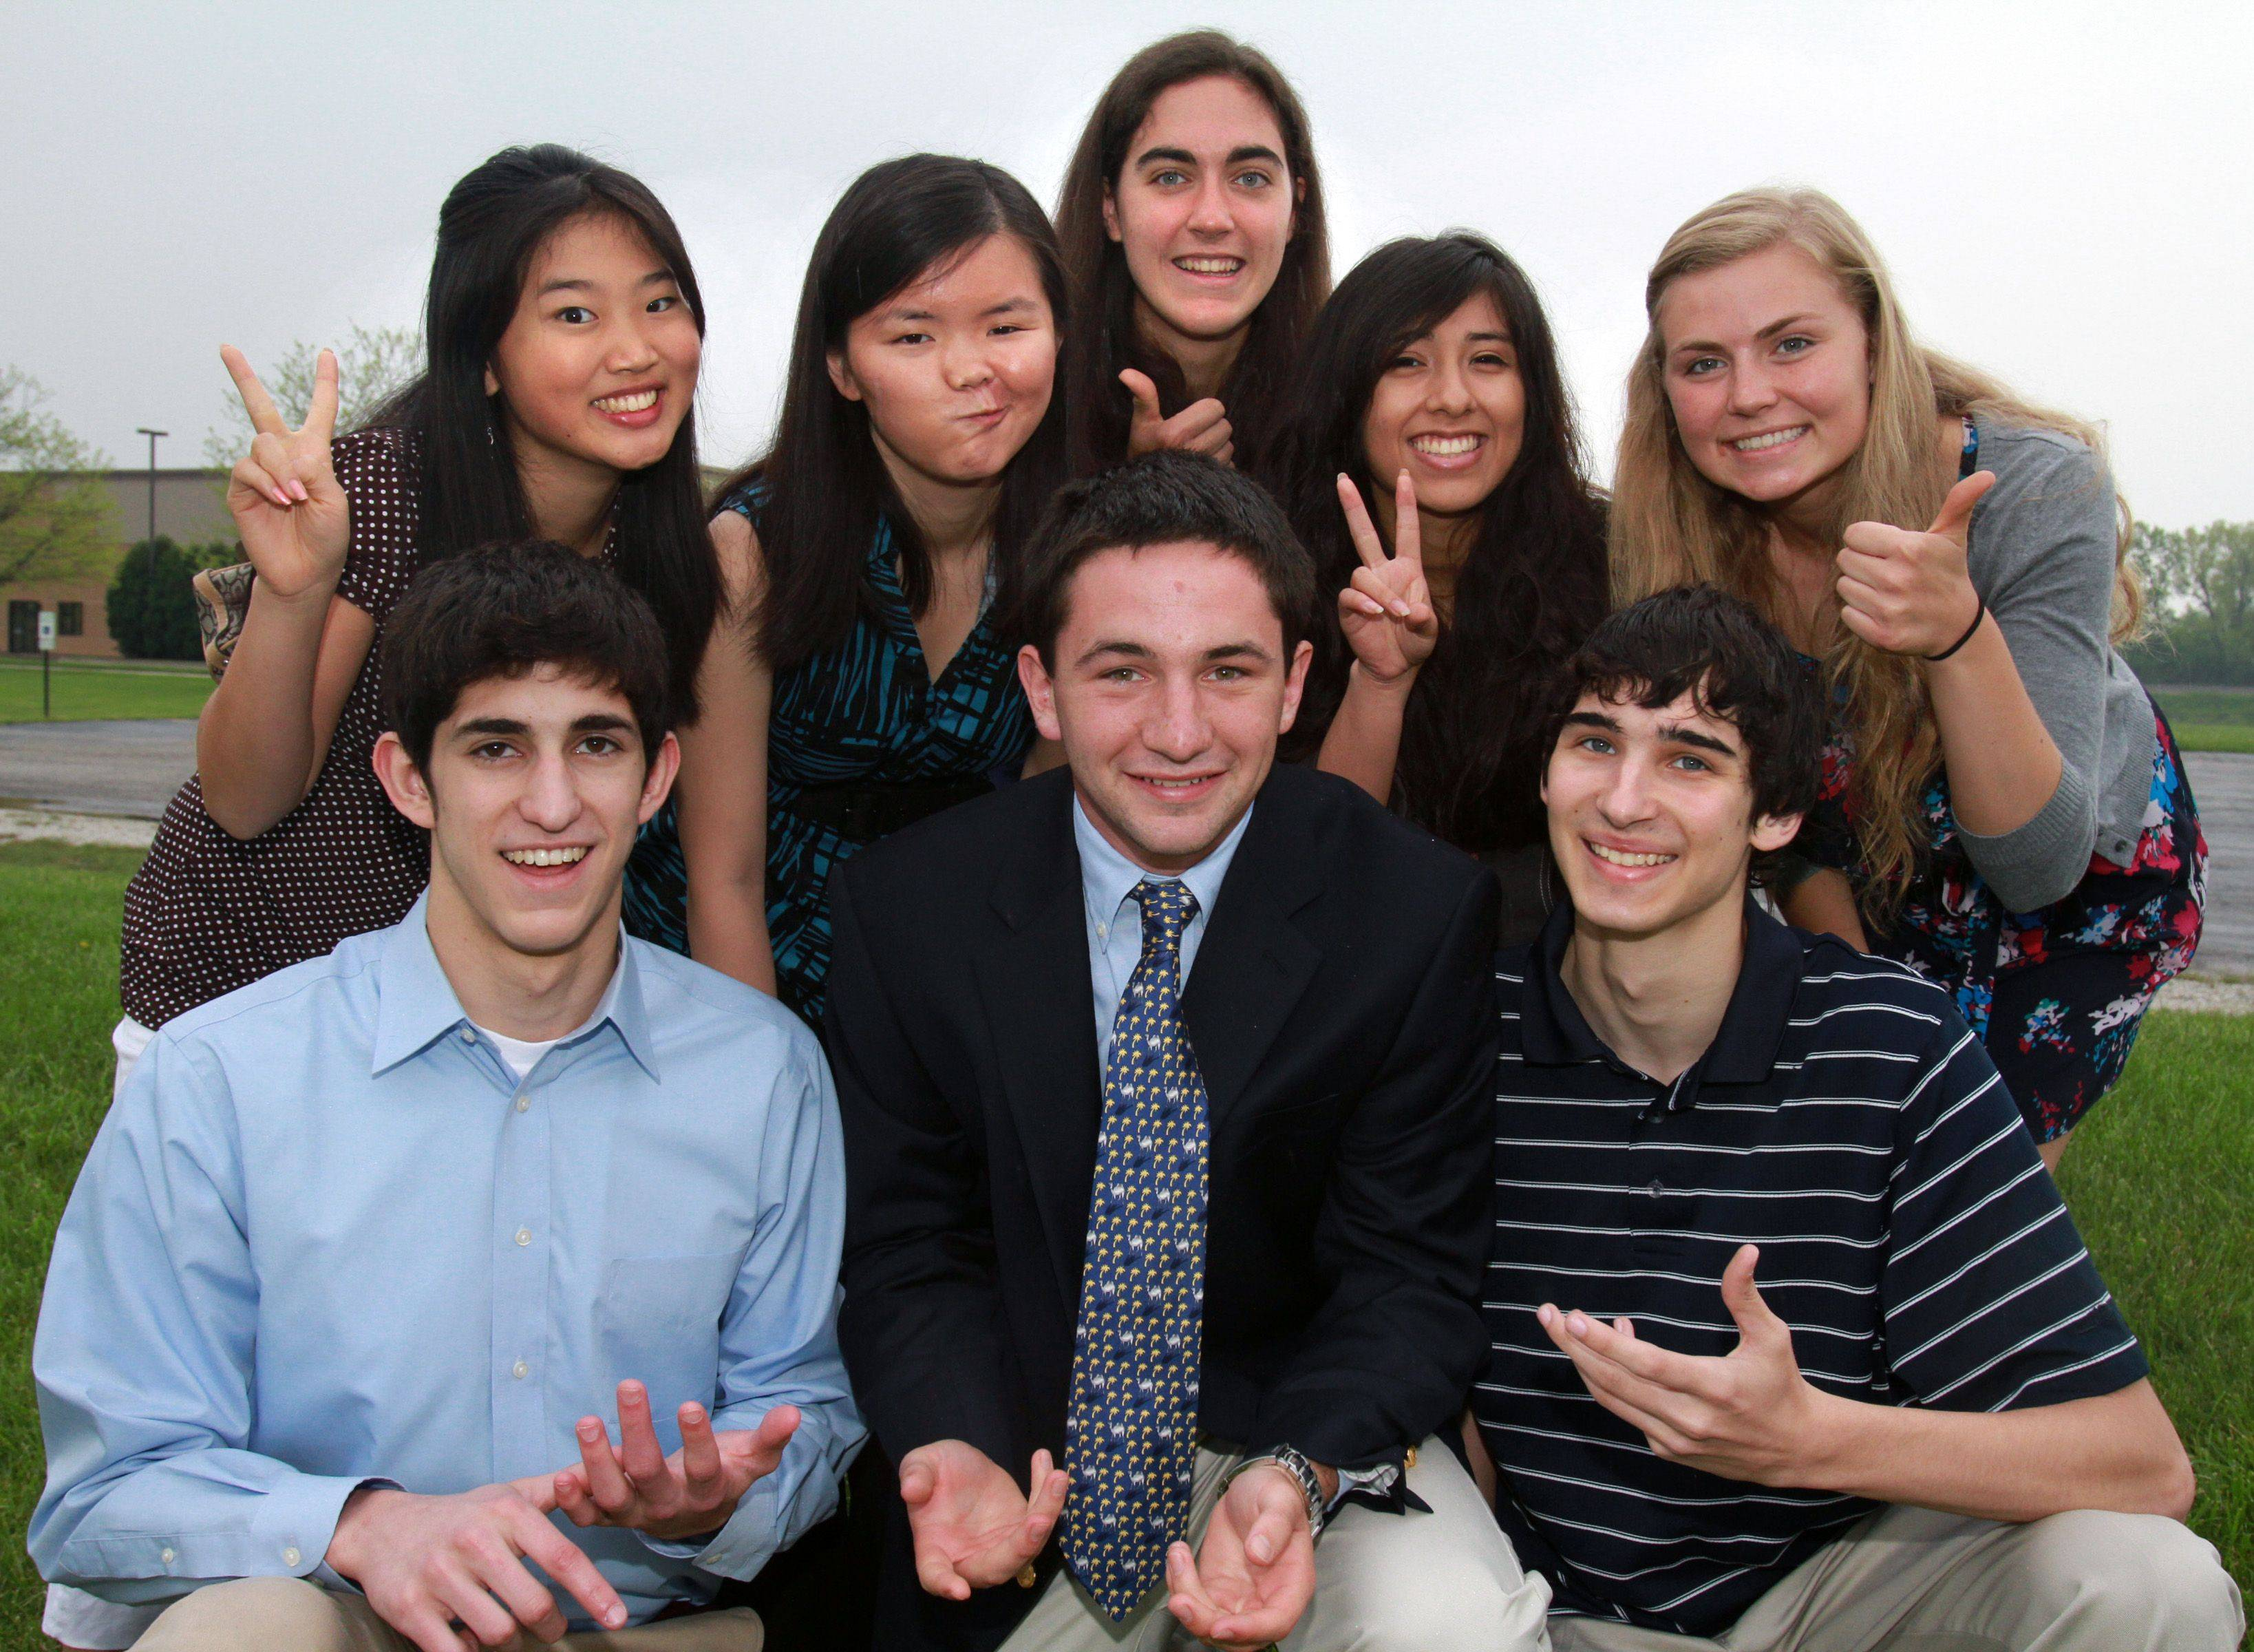 Meet the 2010-11 Lake County Academic Team. Back row, left to right: Haisi Liu, Warren Township High School; Moya Chen, Vernon Hills High School; Erika Danckers, Libertyville High School; Brianna Leon, Grayslake North High School; Susan Delgado, Warren Township High School. Front row, from left: Mitchell Boynton, Libertyville High School; Graham Harwood, Lake Forest Academy; Jason Lewitzke, Grayslake North High School. Not pictured: Eilrayna Gelyana and Jenny Yan, both of Stevenson High School.